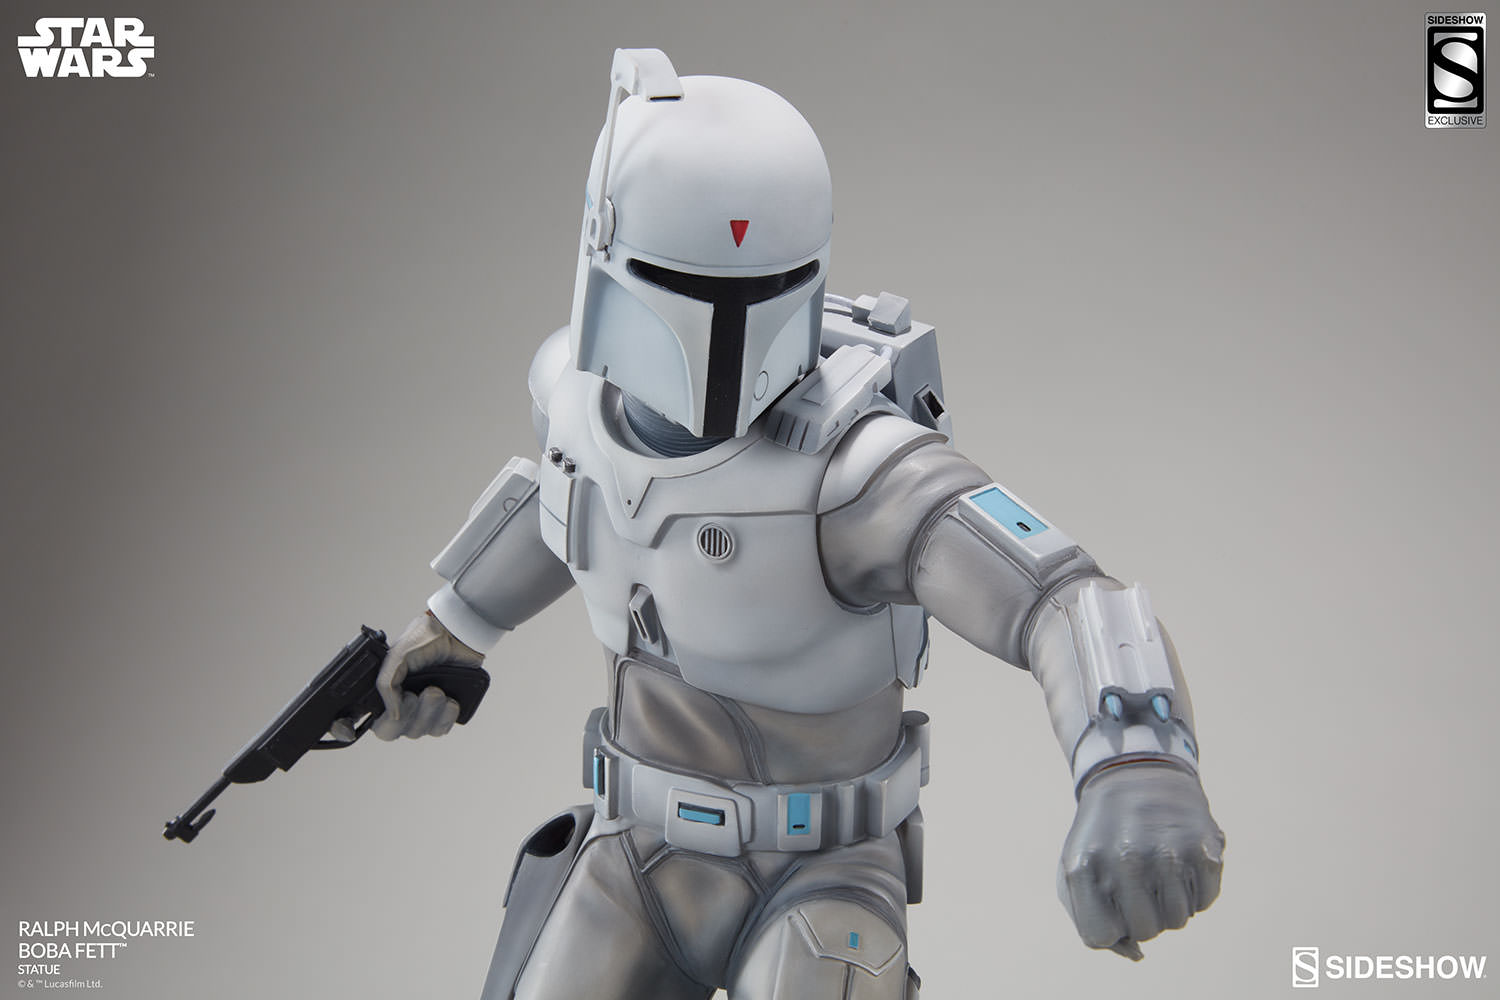 Star Wars Ralph Mcquarrie Boba Fett Statue By Sideshow Colle